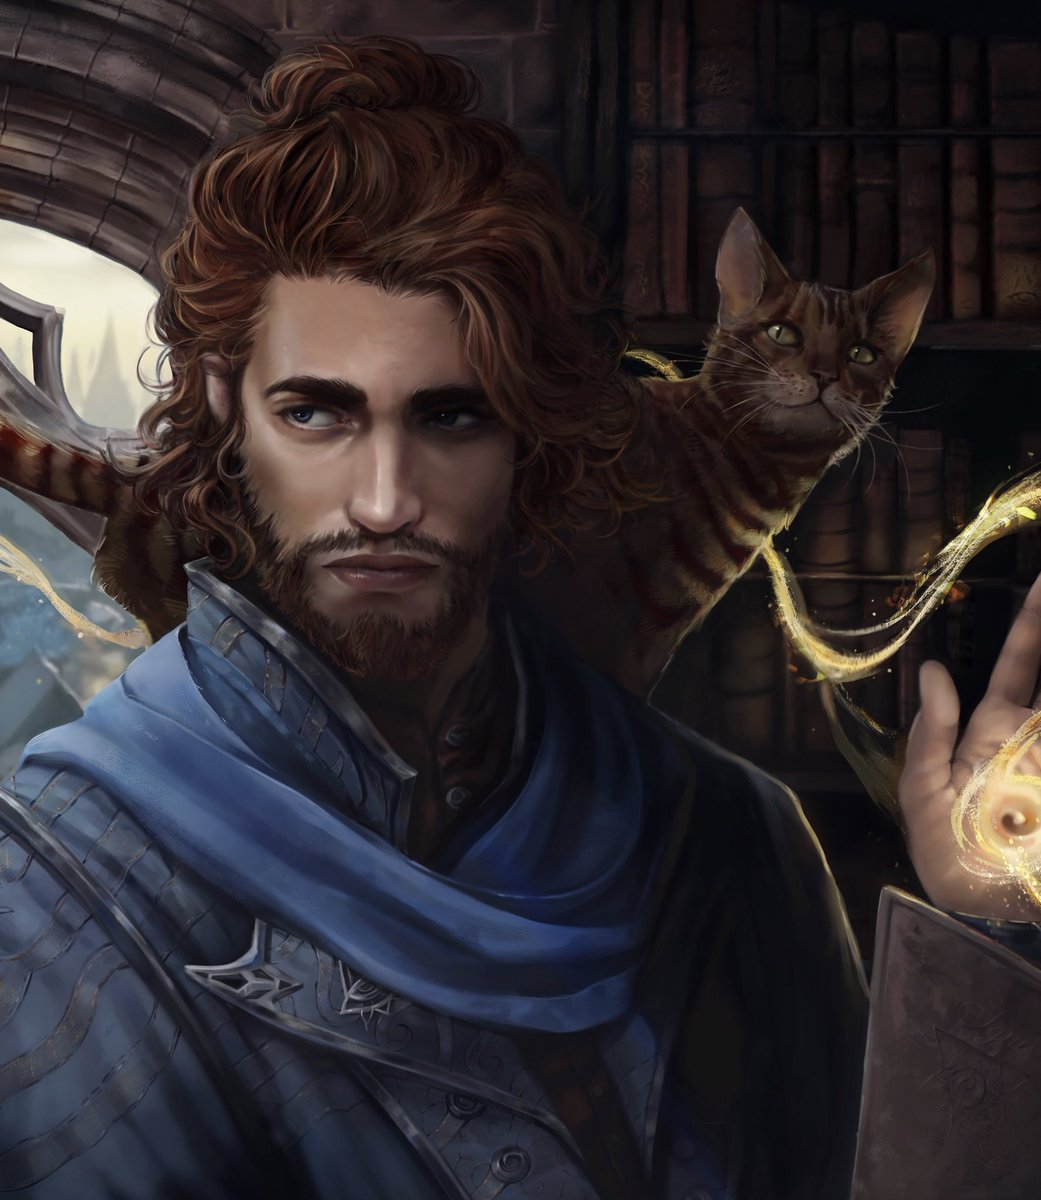 Soltryce Academy graduate AU Caleb Widogast for @FluffyLtd !! More than thrilled to paint best boy and Exandria's best cat . #CriticalRole #criticalrolefanart<br>http://pic.twitter.com/yR9HneEuqQ